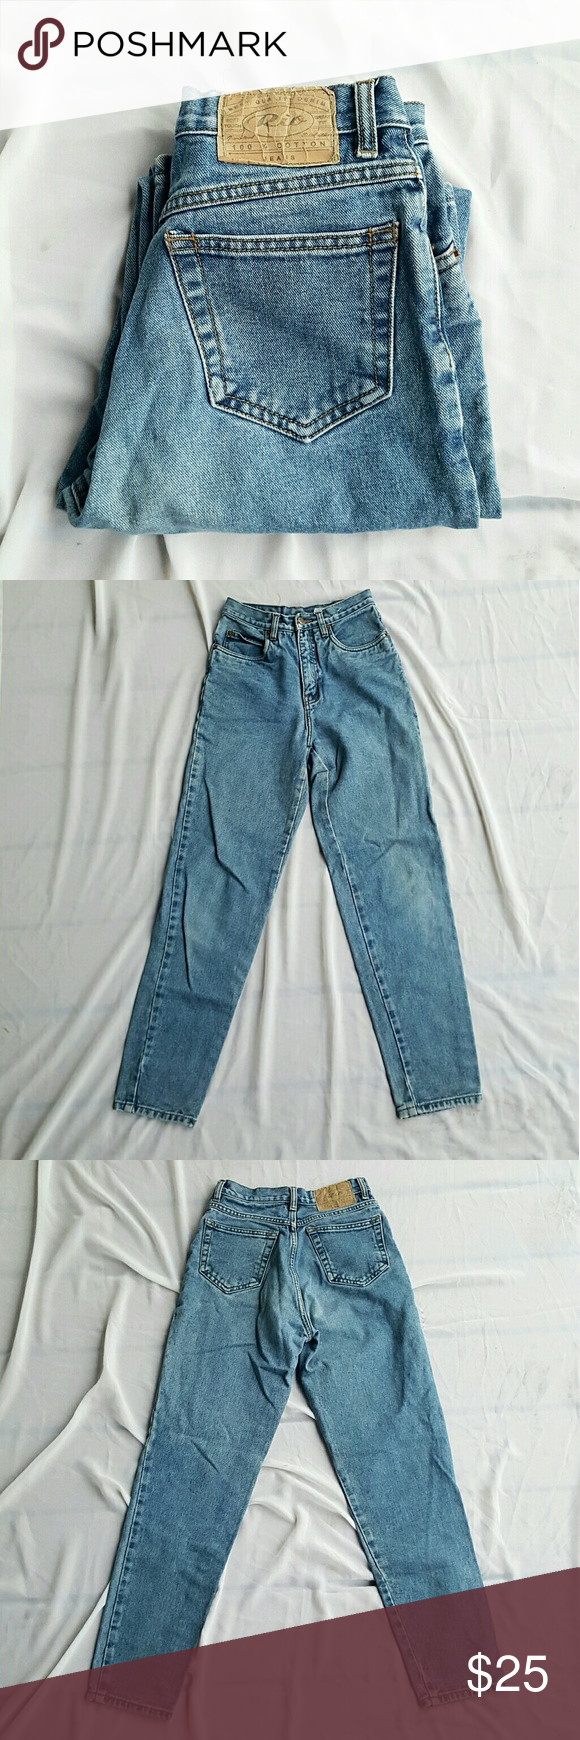 Rio Mom High Waisted Jeans Blue Denim Jeans High Waisted Mom Jeans Style Classic